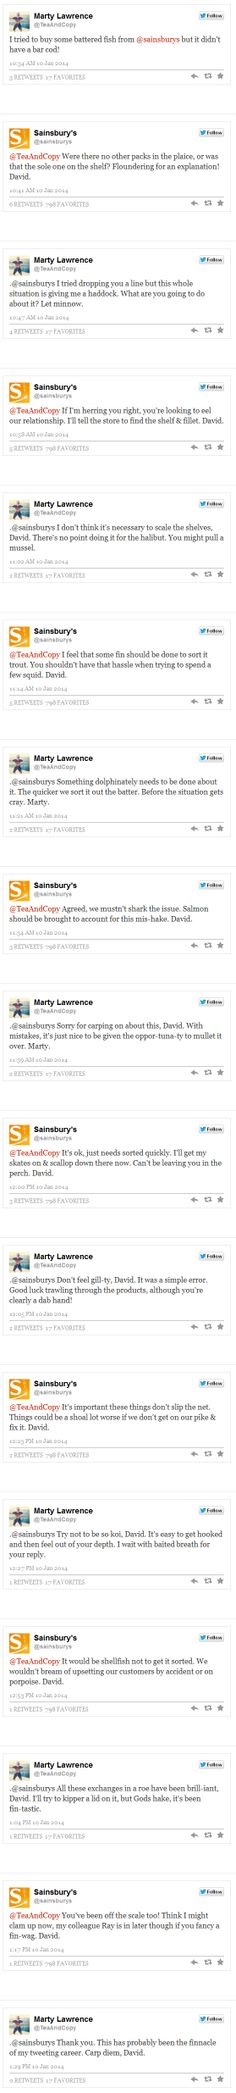 Sainsbury's has a epic, pun-filled conversation with customer Marty Lawrence